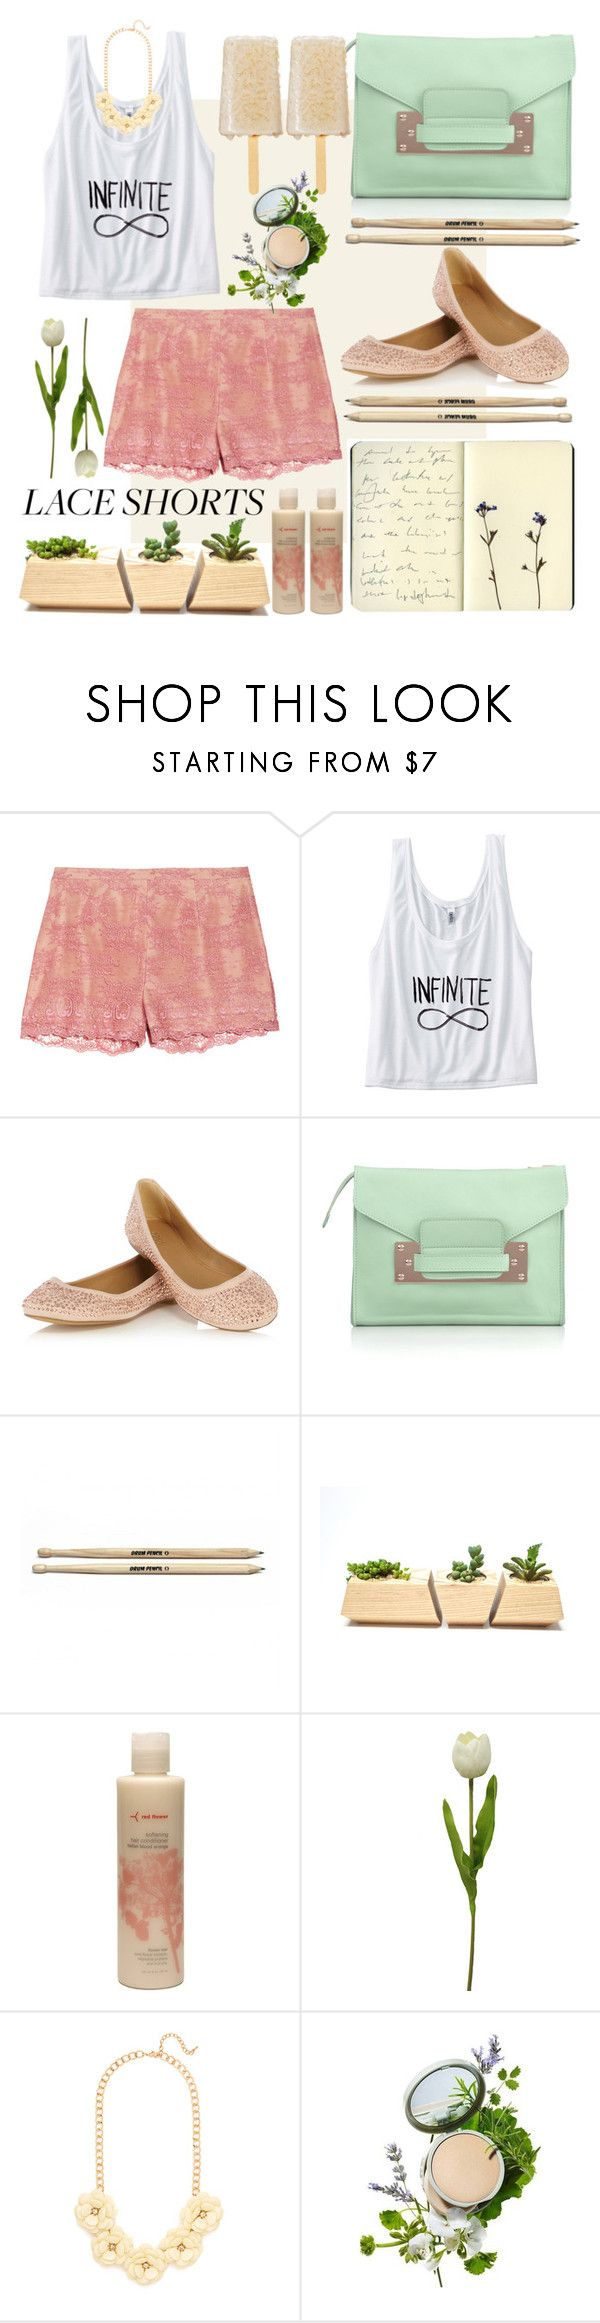 """How Do You Style Ultra-Fem Lace Shorts?"" by mary-domenech ❤ liked on Polyvore featuring RED Valentino, Oasis, Sophie Hulme, Moleskine, red flower, BaubleBar, Origins, contest and laceshorts"